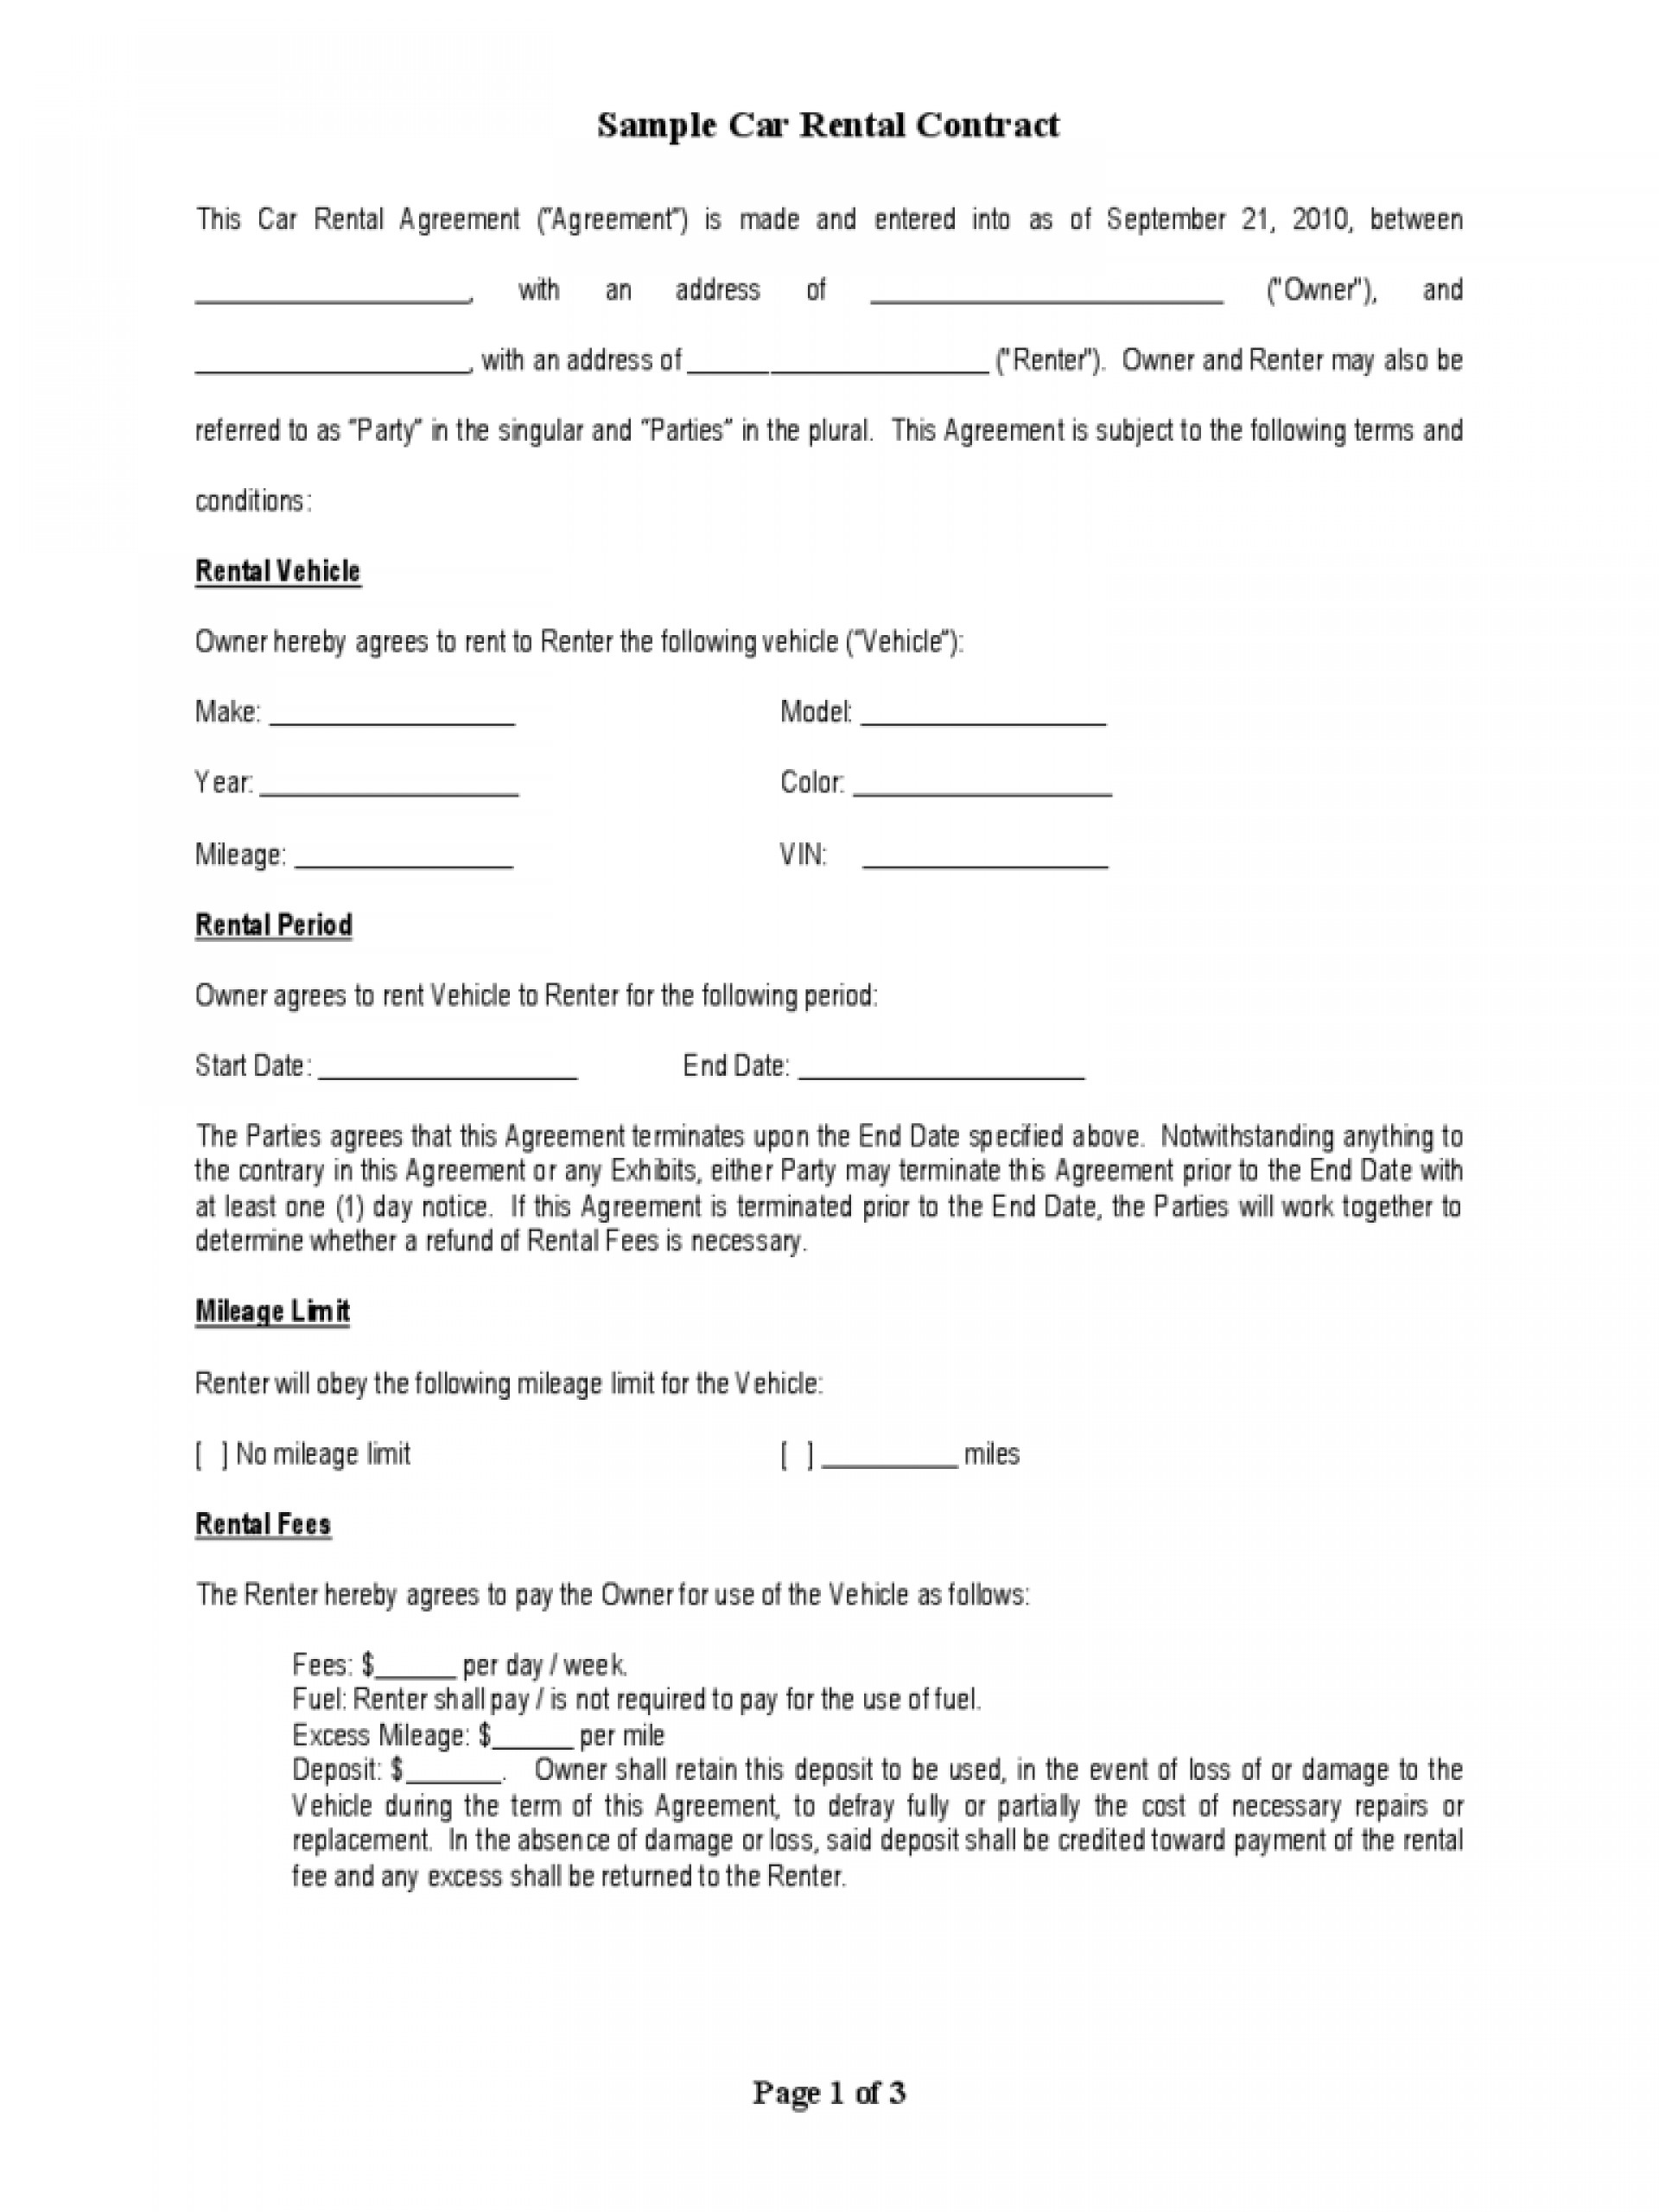 014 Fascinating Car Rental Agreement Template Design  Vehicle Rent To Own South Africa Singapore1920